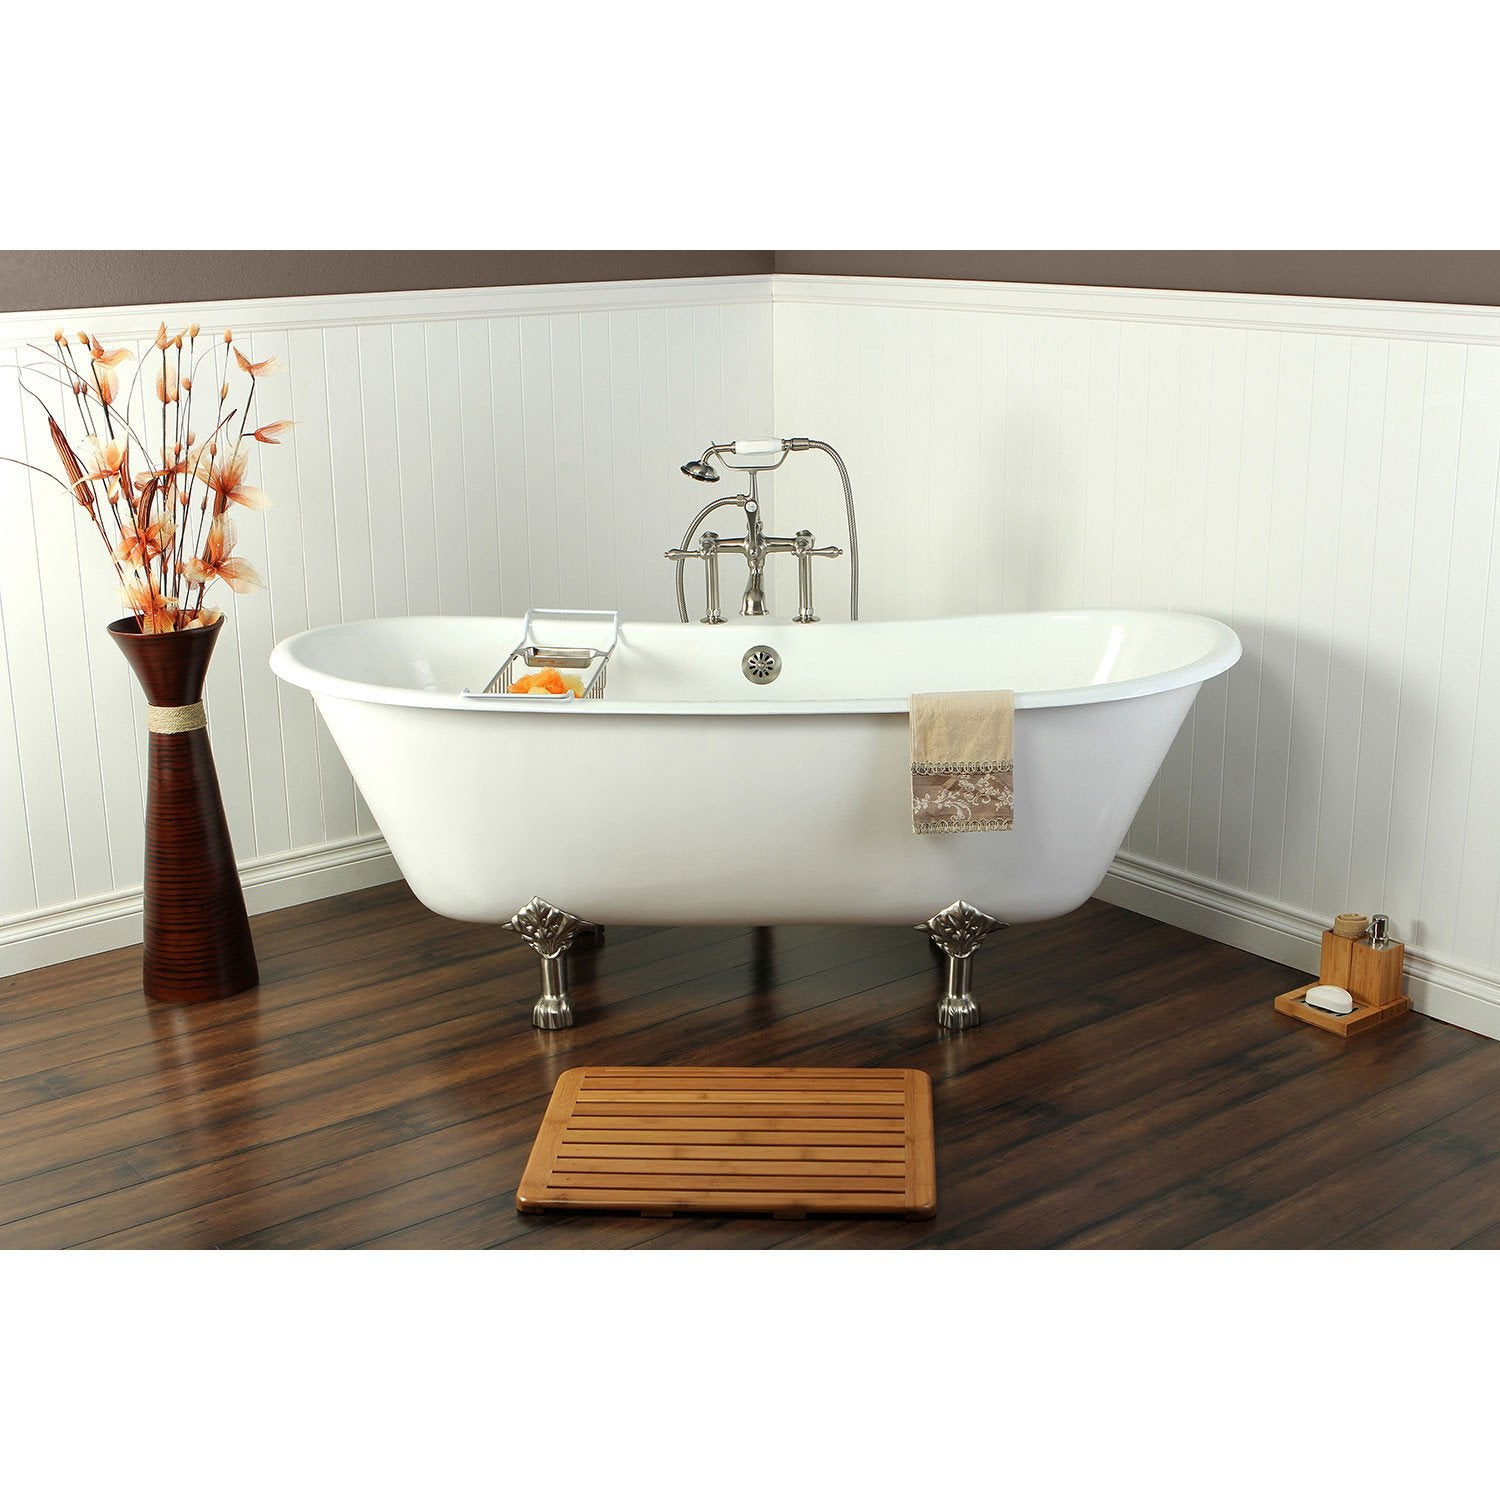 67 Cast Iron Slipper Clawfoot Tub And Satin Nickel Tub Hardware Package Ctp03